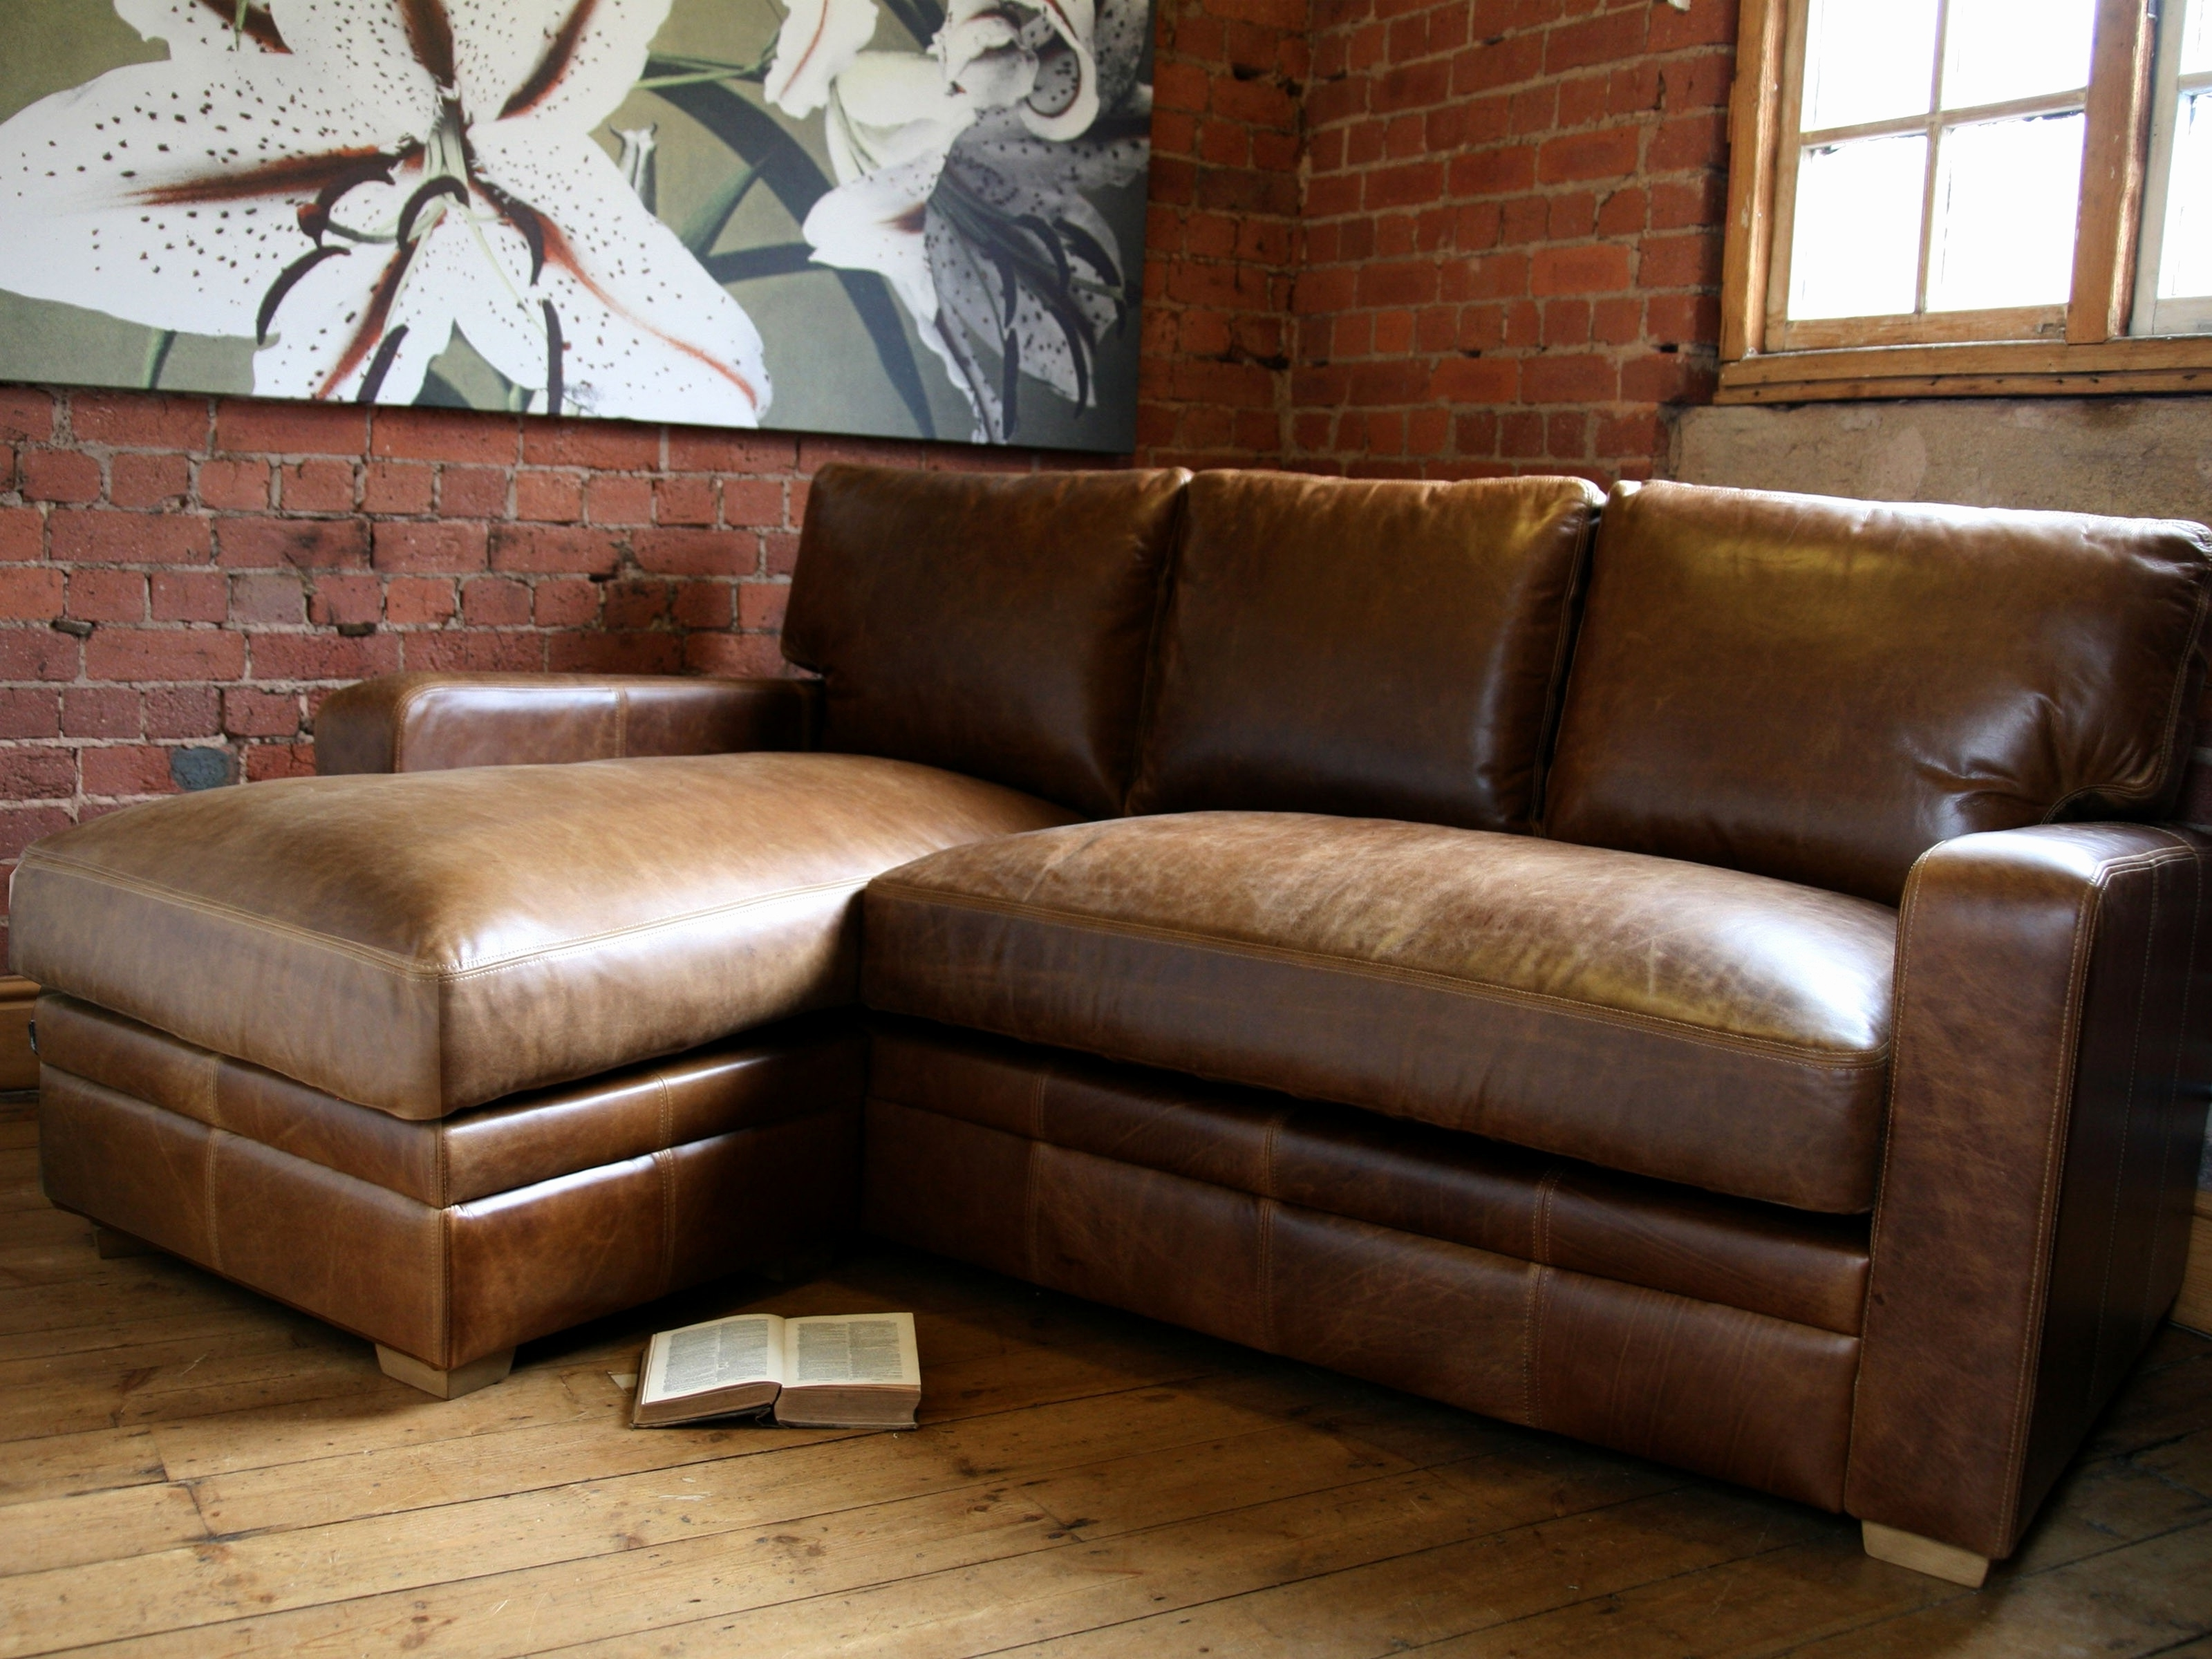 Most Recently Released Leather Couches With Chaise Lounge For Awesome L Shaped Couch With Chaise 2018 – Couches And Sofas Ideas (View 11 of 15)